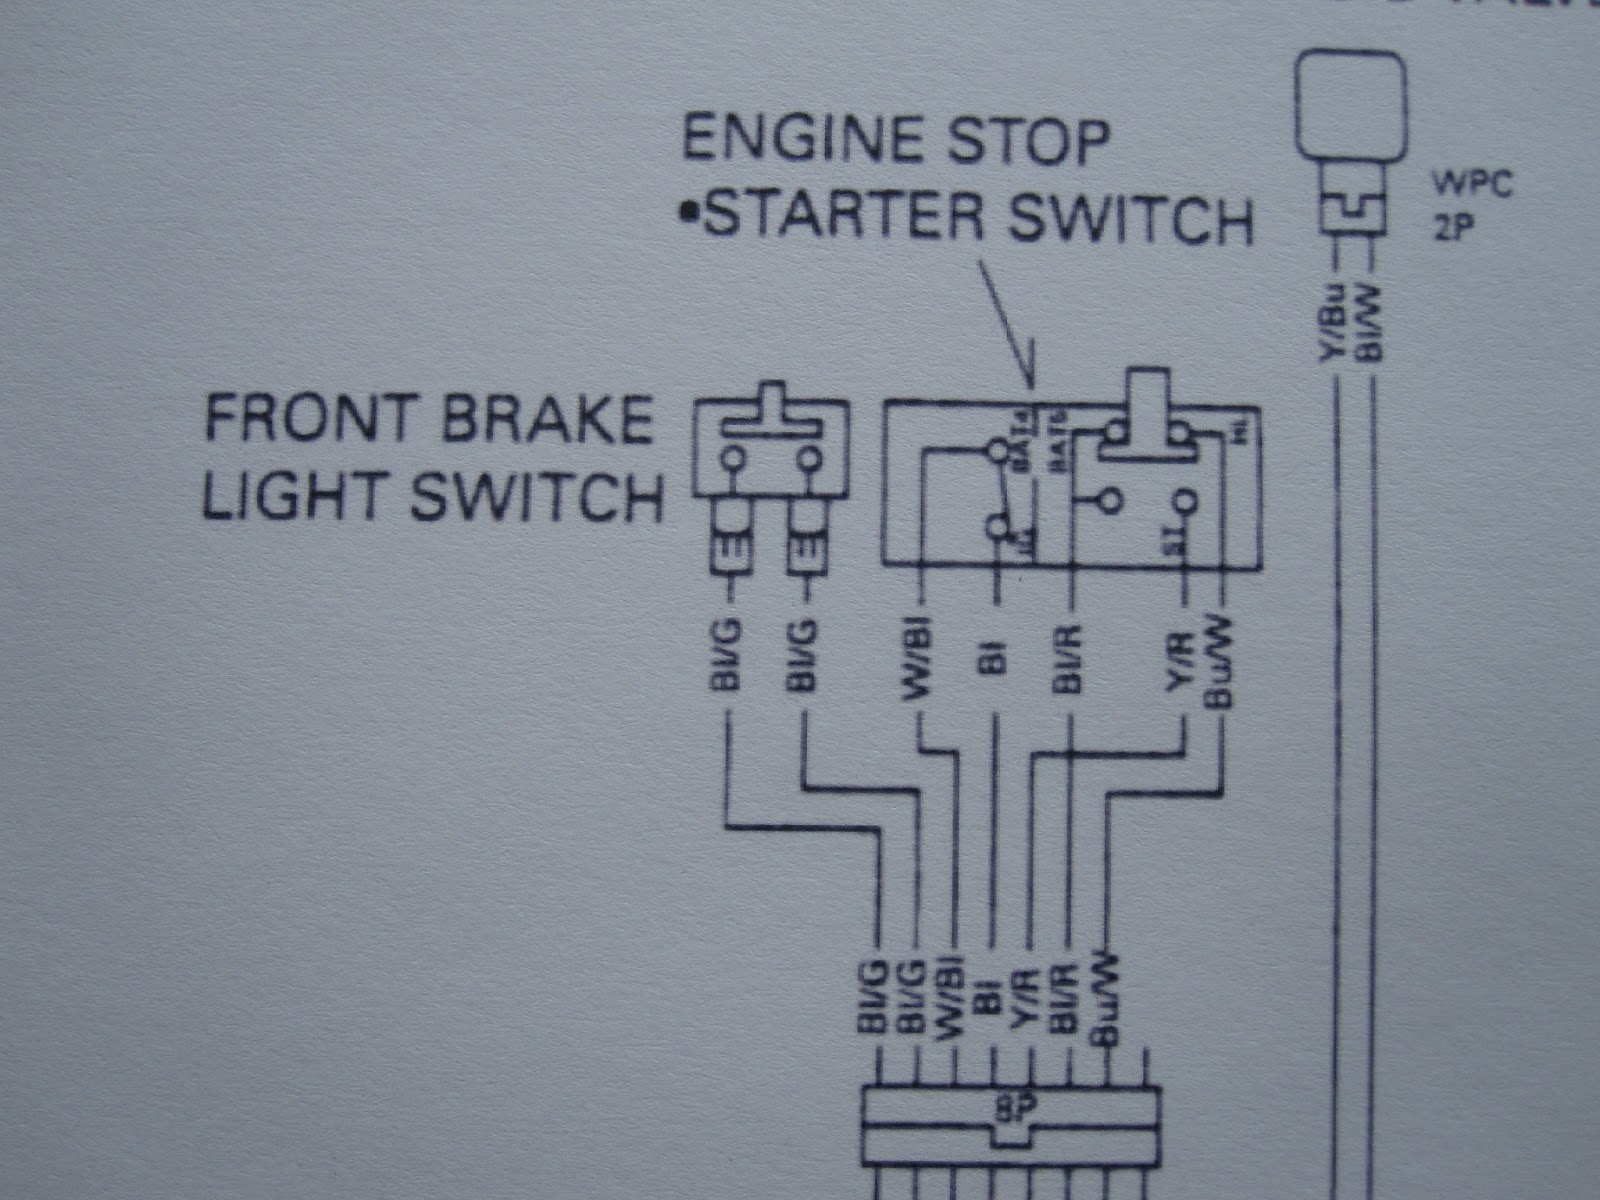 Reconfigured Controls The Gb500 Experience Honda Xbr500 Wiring Diagram Gb And Cbr Have Different Styles Of Kill Switch Starter With Some Help From Friends I Got It Sorted At Expense Having A Functioning